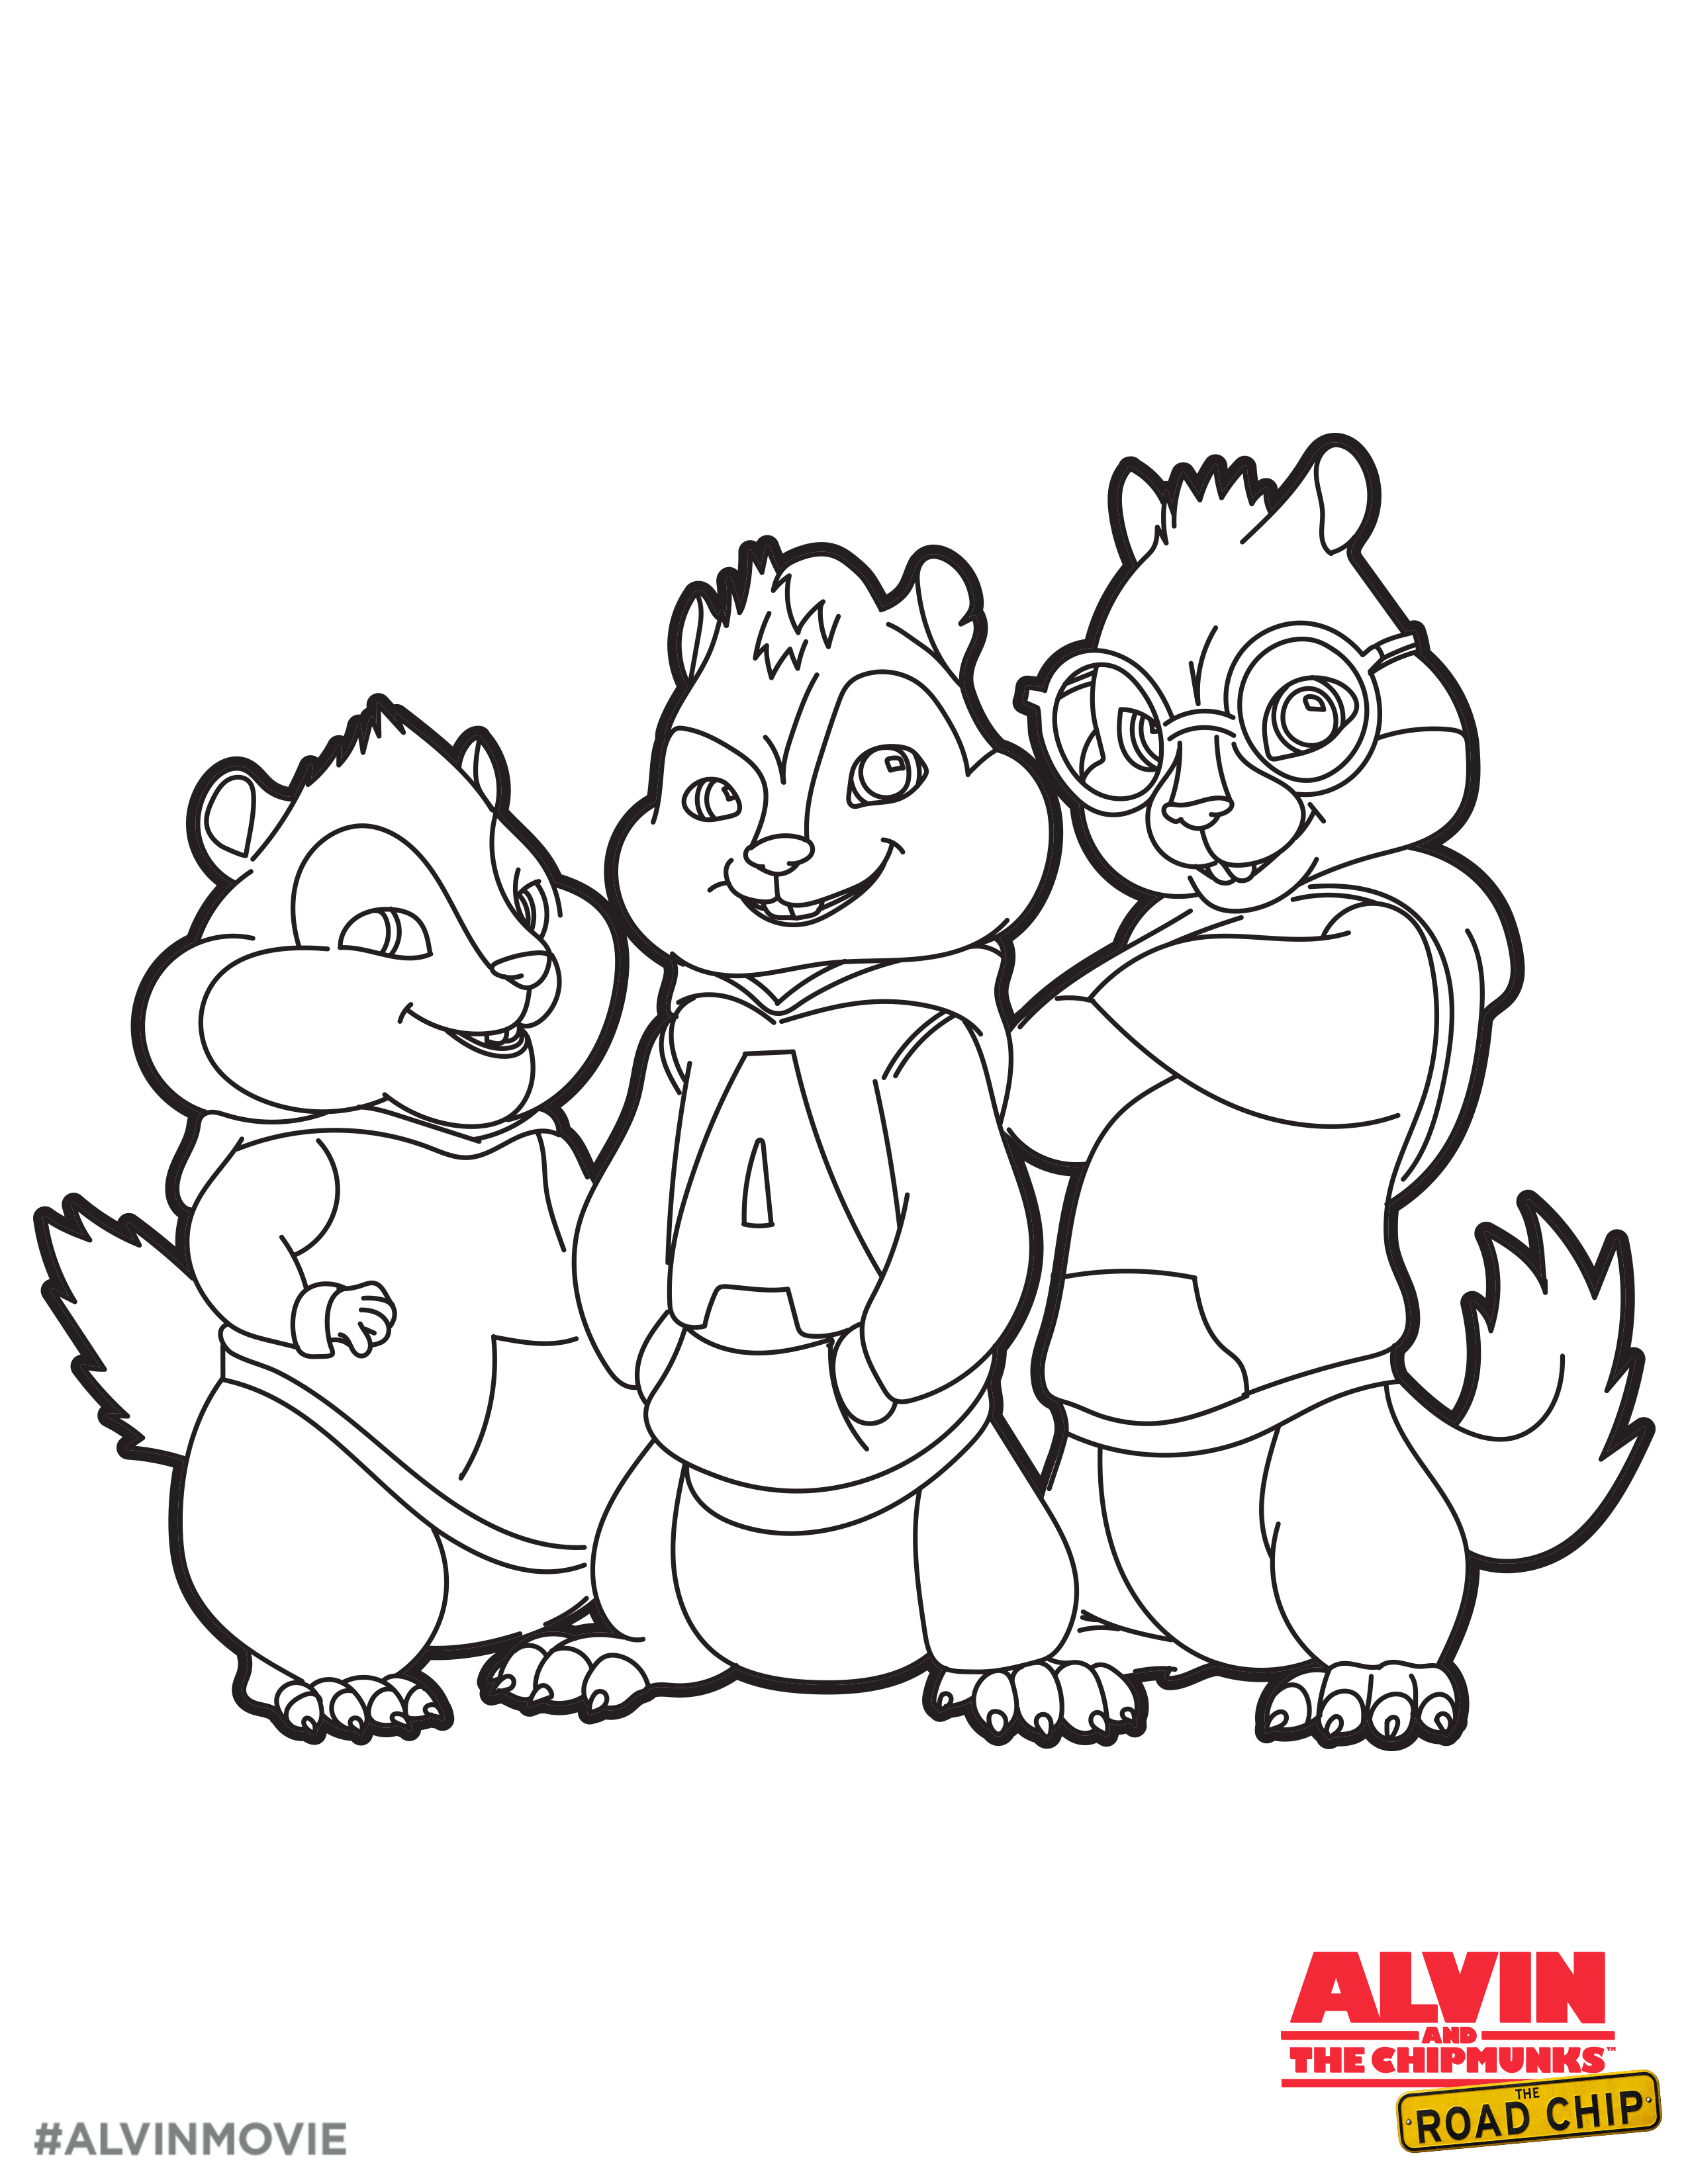 Alvin And The Chipmunks Free Coloring Printable Alvin And The Chipmunks The Road Chip Cat Coloring Book Cartoon Coloring Pages Alvin And The Chipmunks